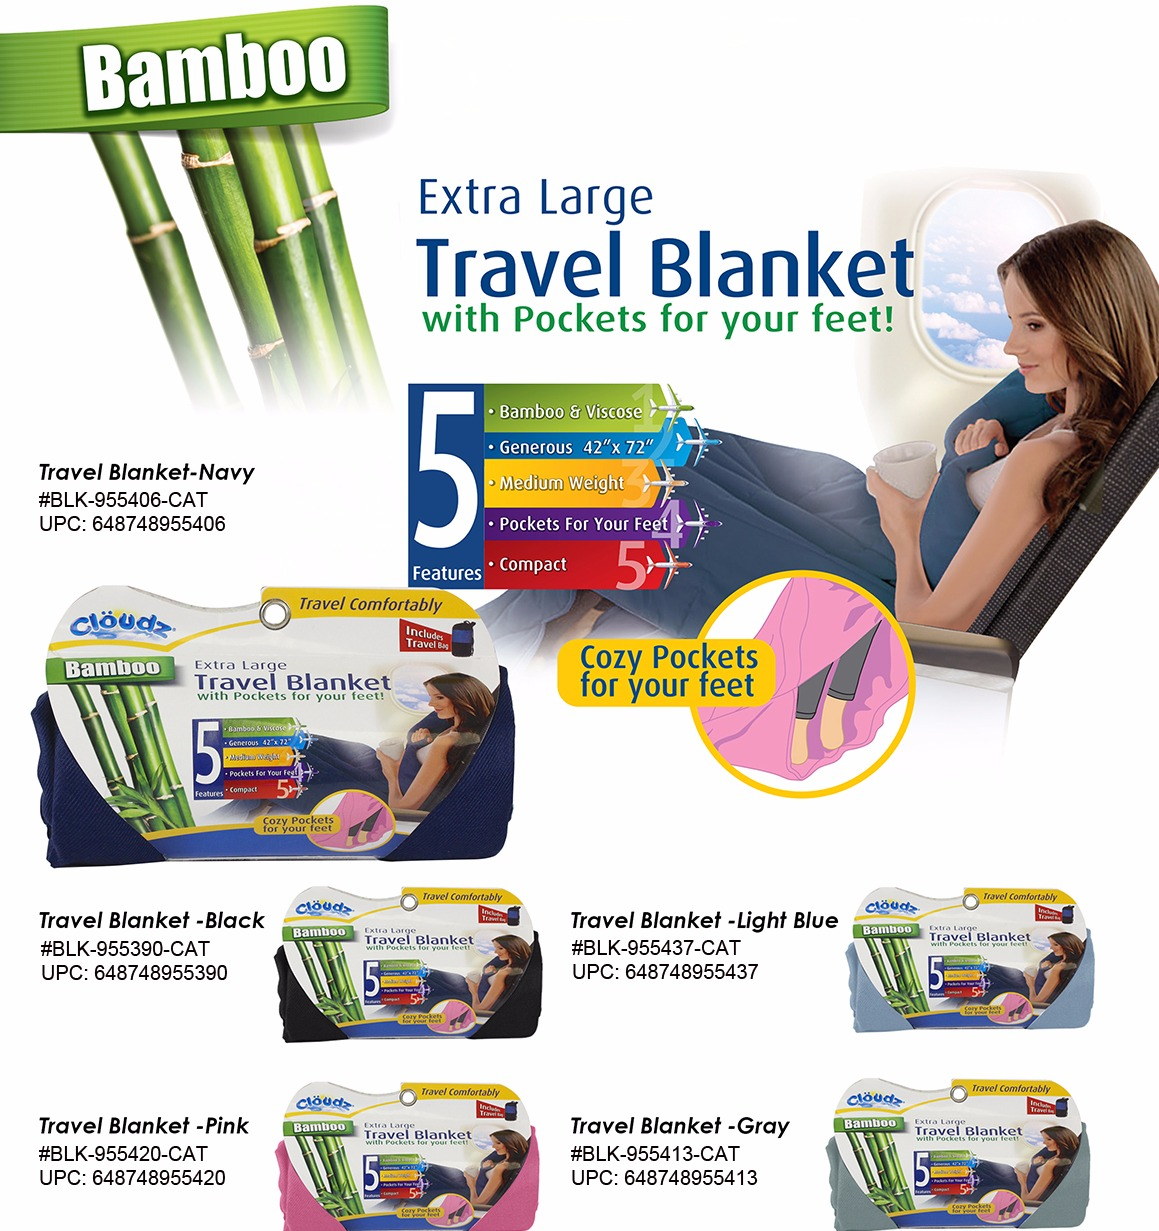 SNI Today - Cloudz Bamboo Travel Blanket- REVISED_edited